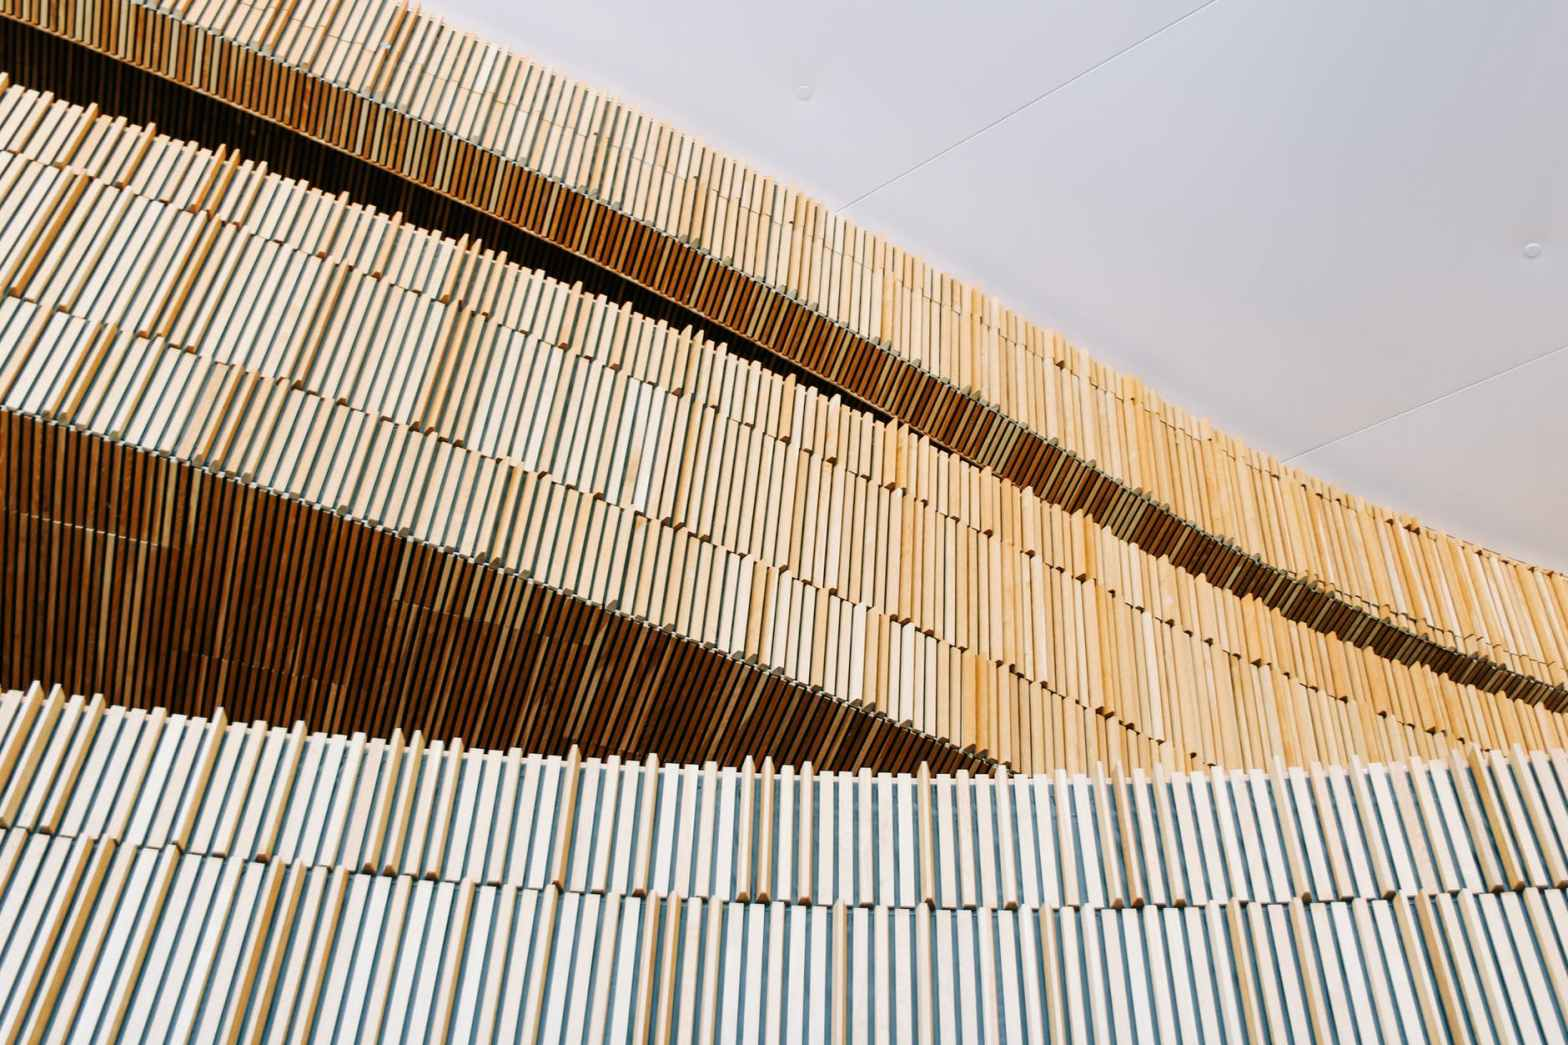 rows of wooden panels of lumber construction